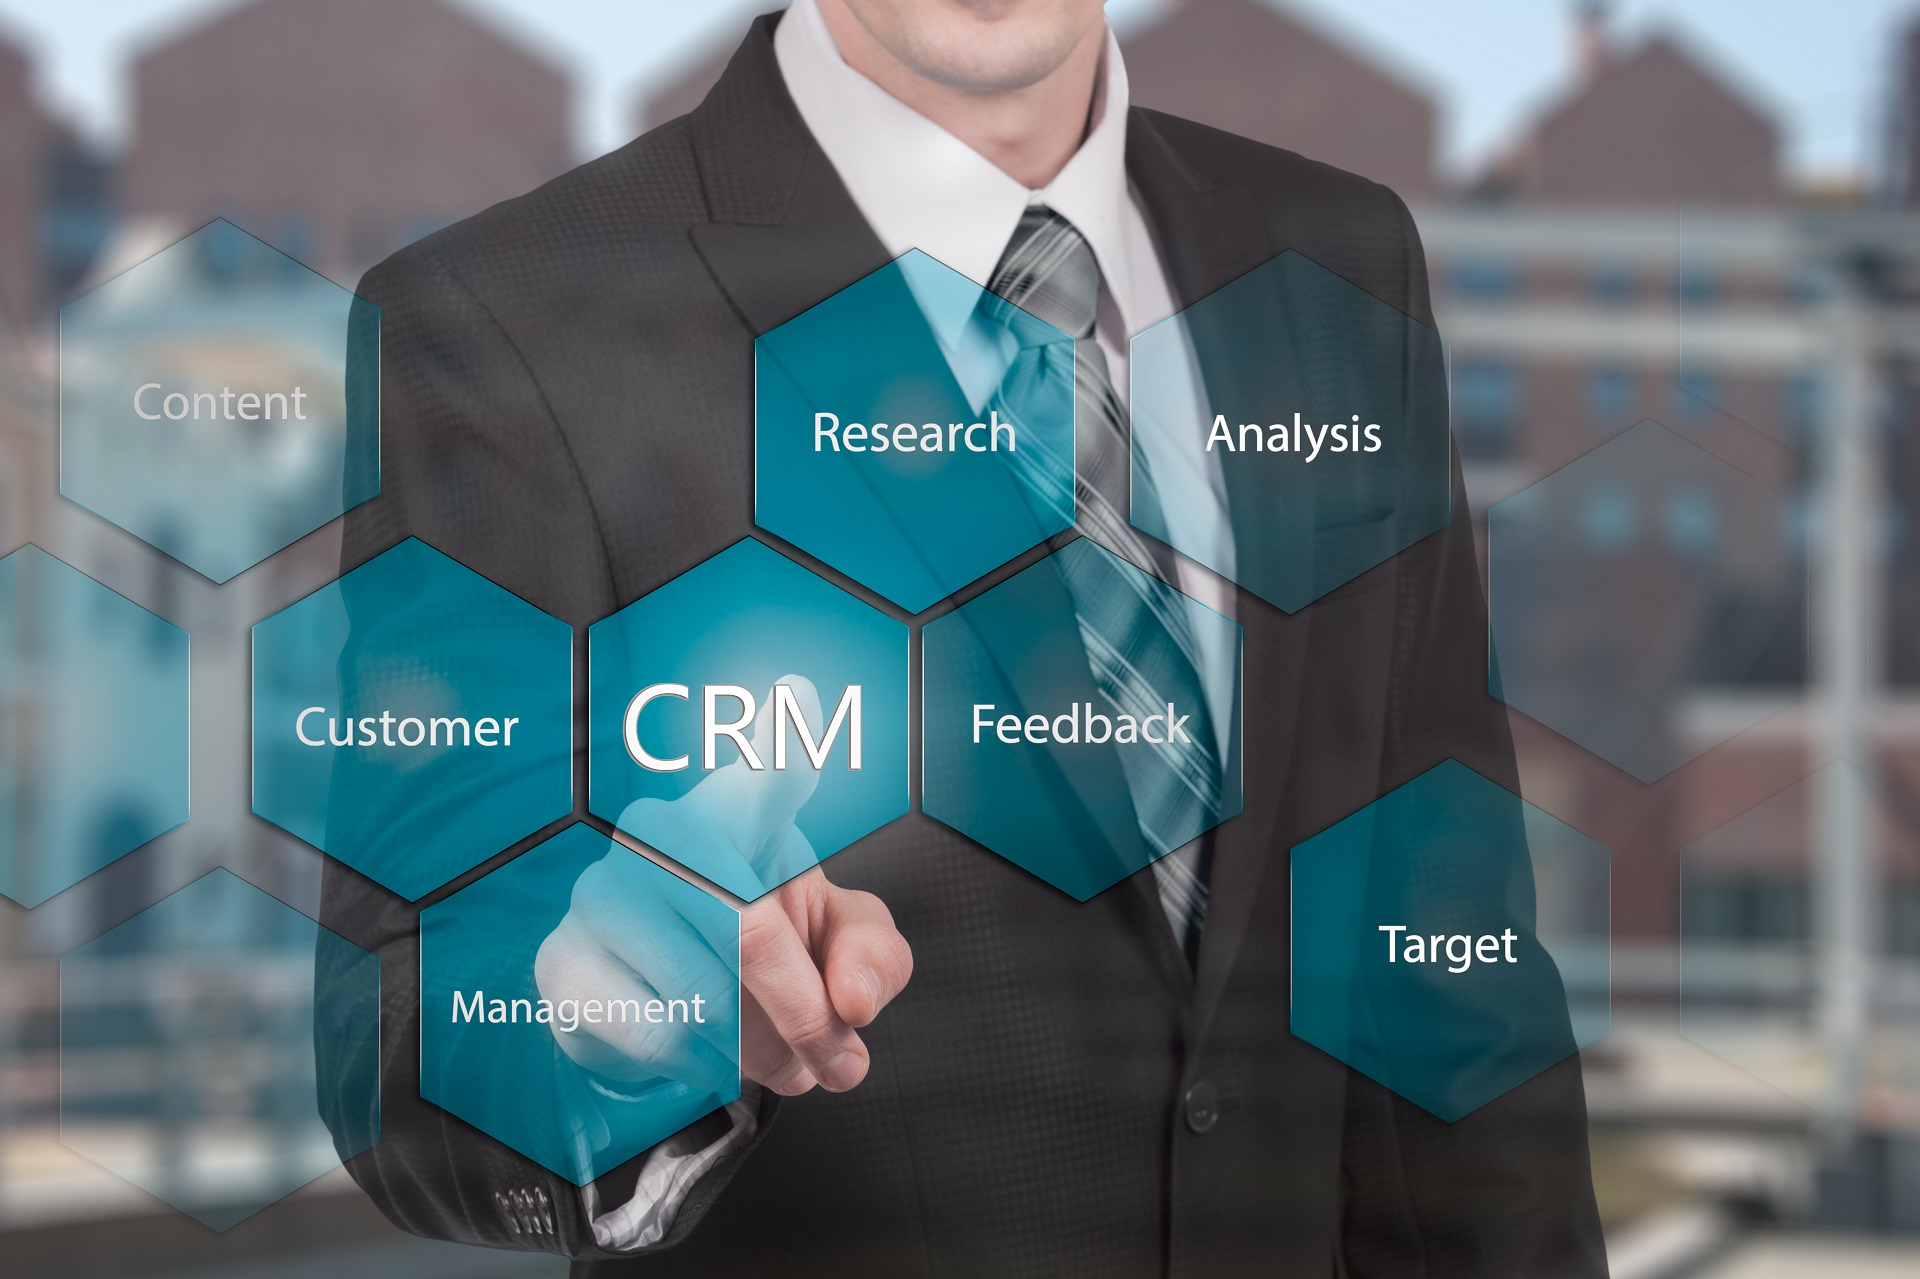 Easy for the non-technically minded to create business process in RAALINK CRM